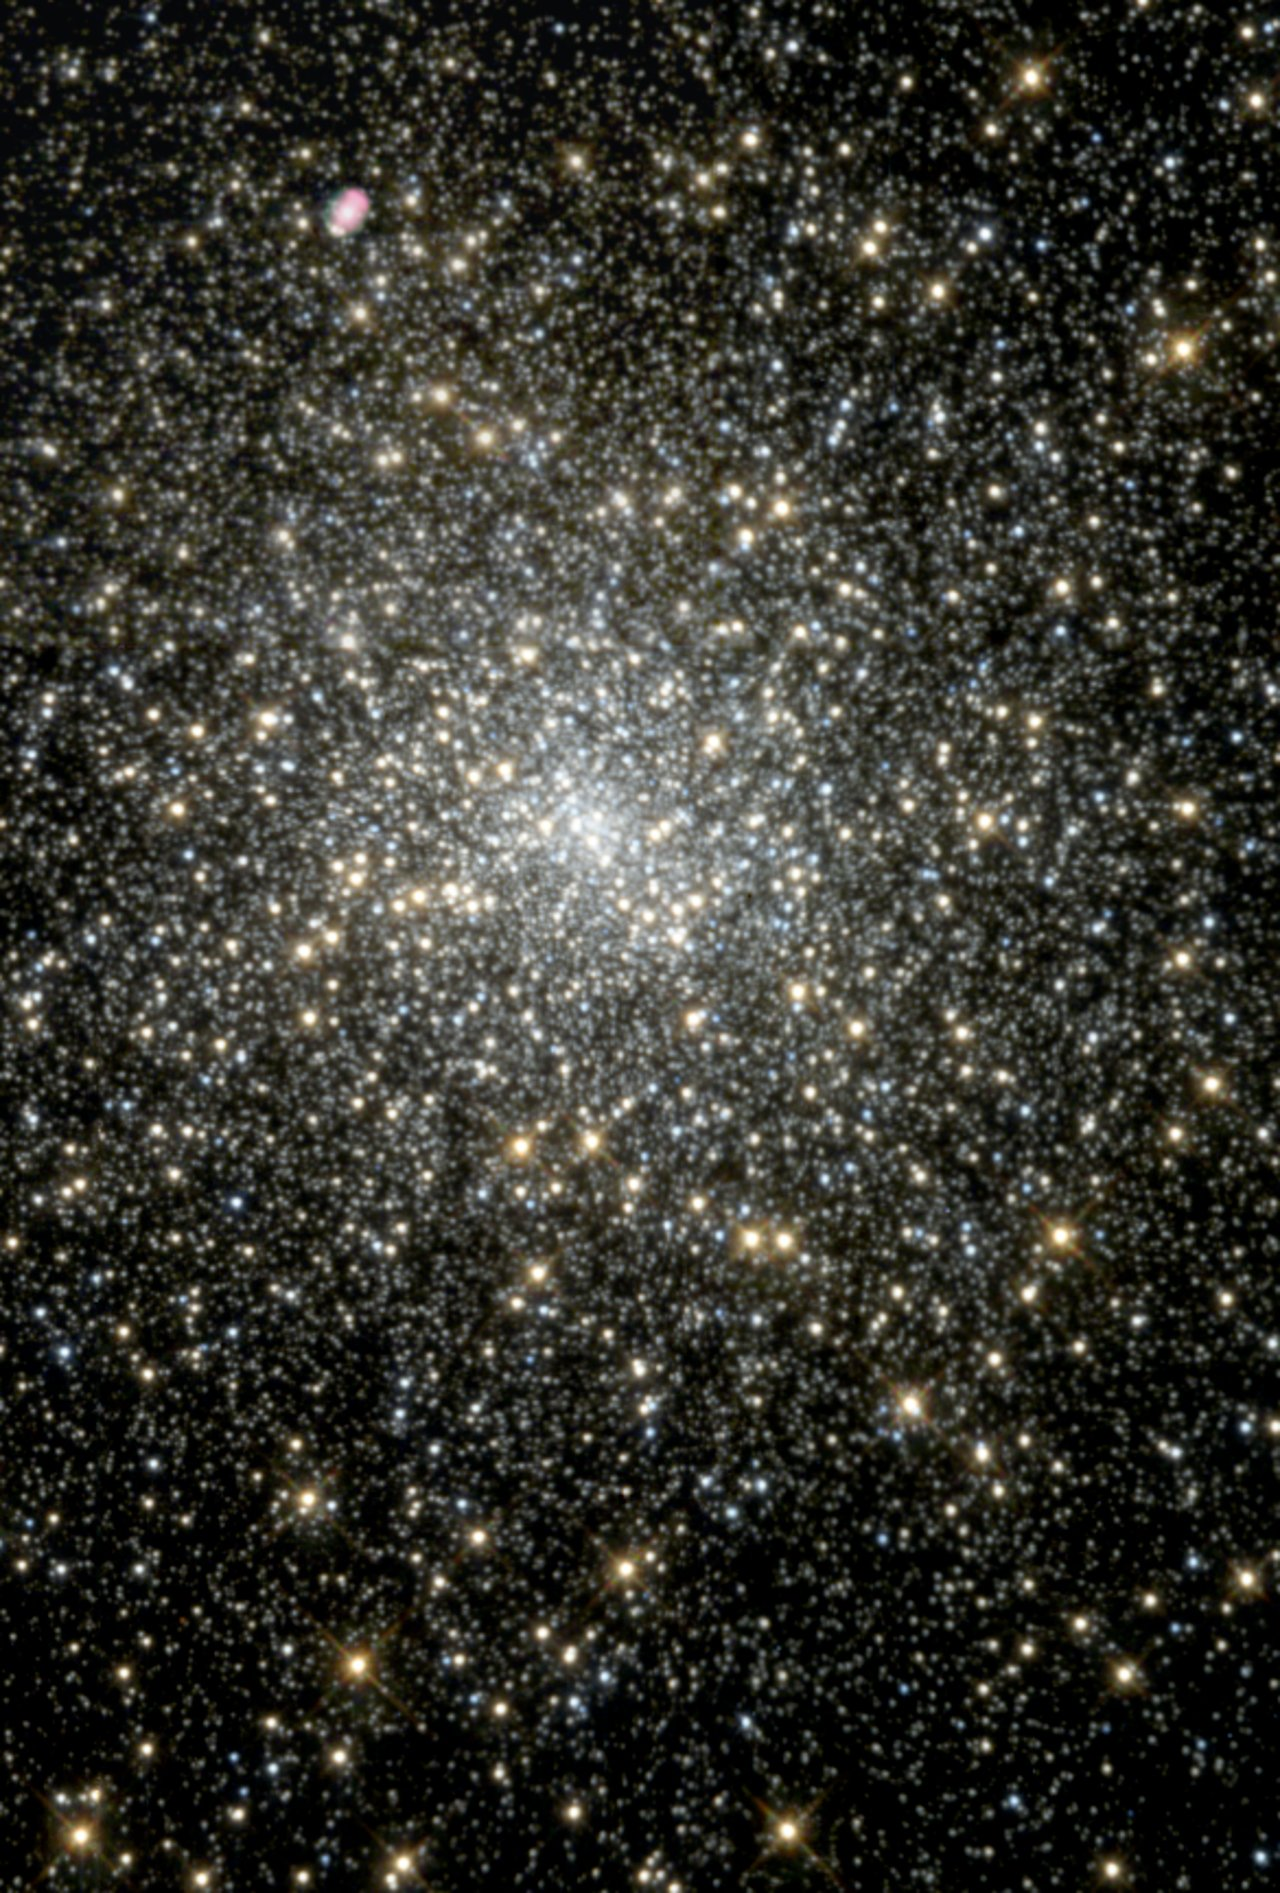 A Dying Star in Globular Cluster M15